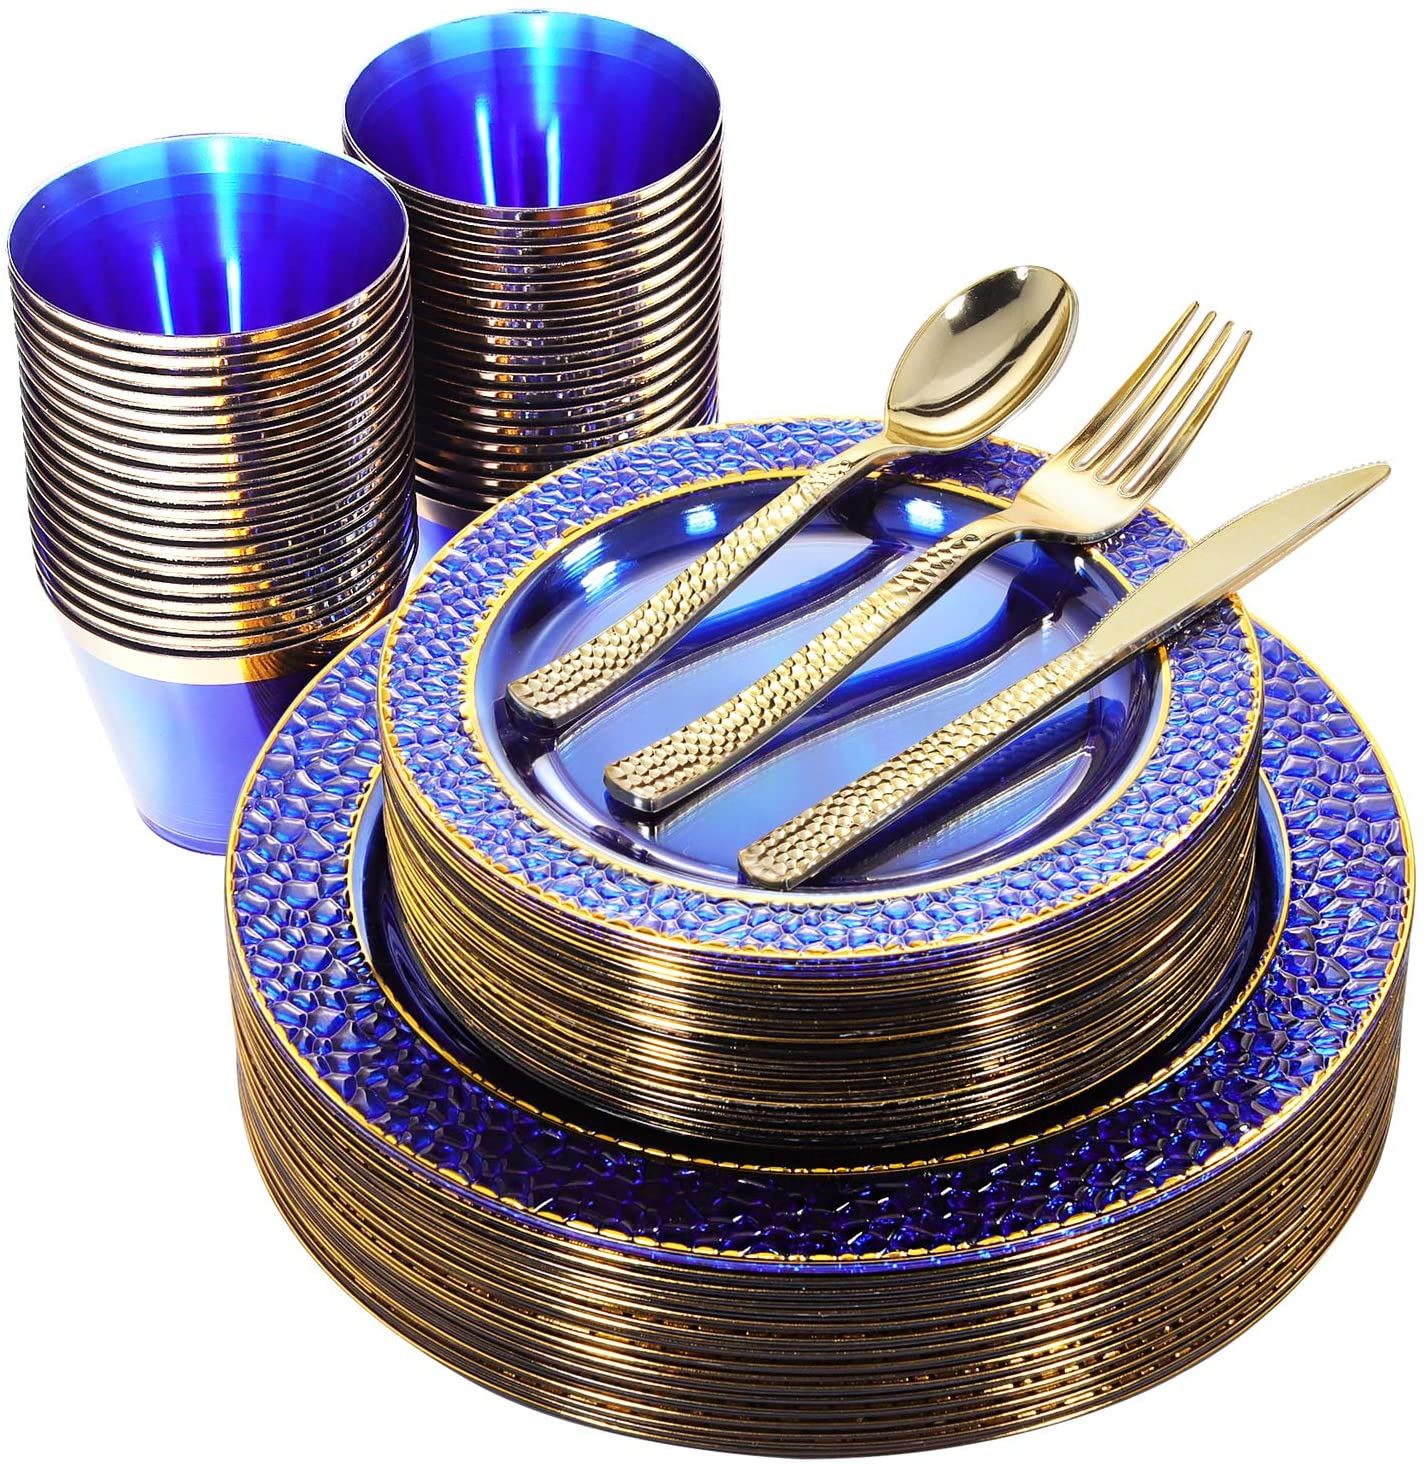 Nervure 150PCS Clear Blue Plastic Plates & Gold Plastic Silverware - Disposable Gold Plastic Plates Include 25Dinner Plates, 25Dessert Plates, 25Cups, 25Forks, 25Knives, 25Spoons for Party : Everything Else